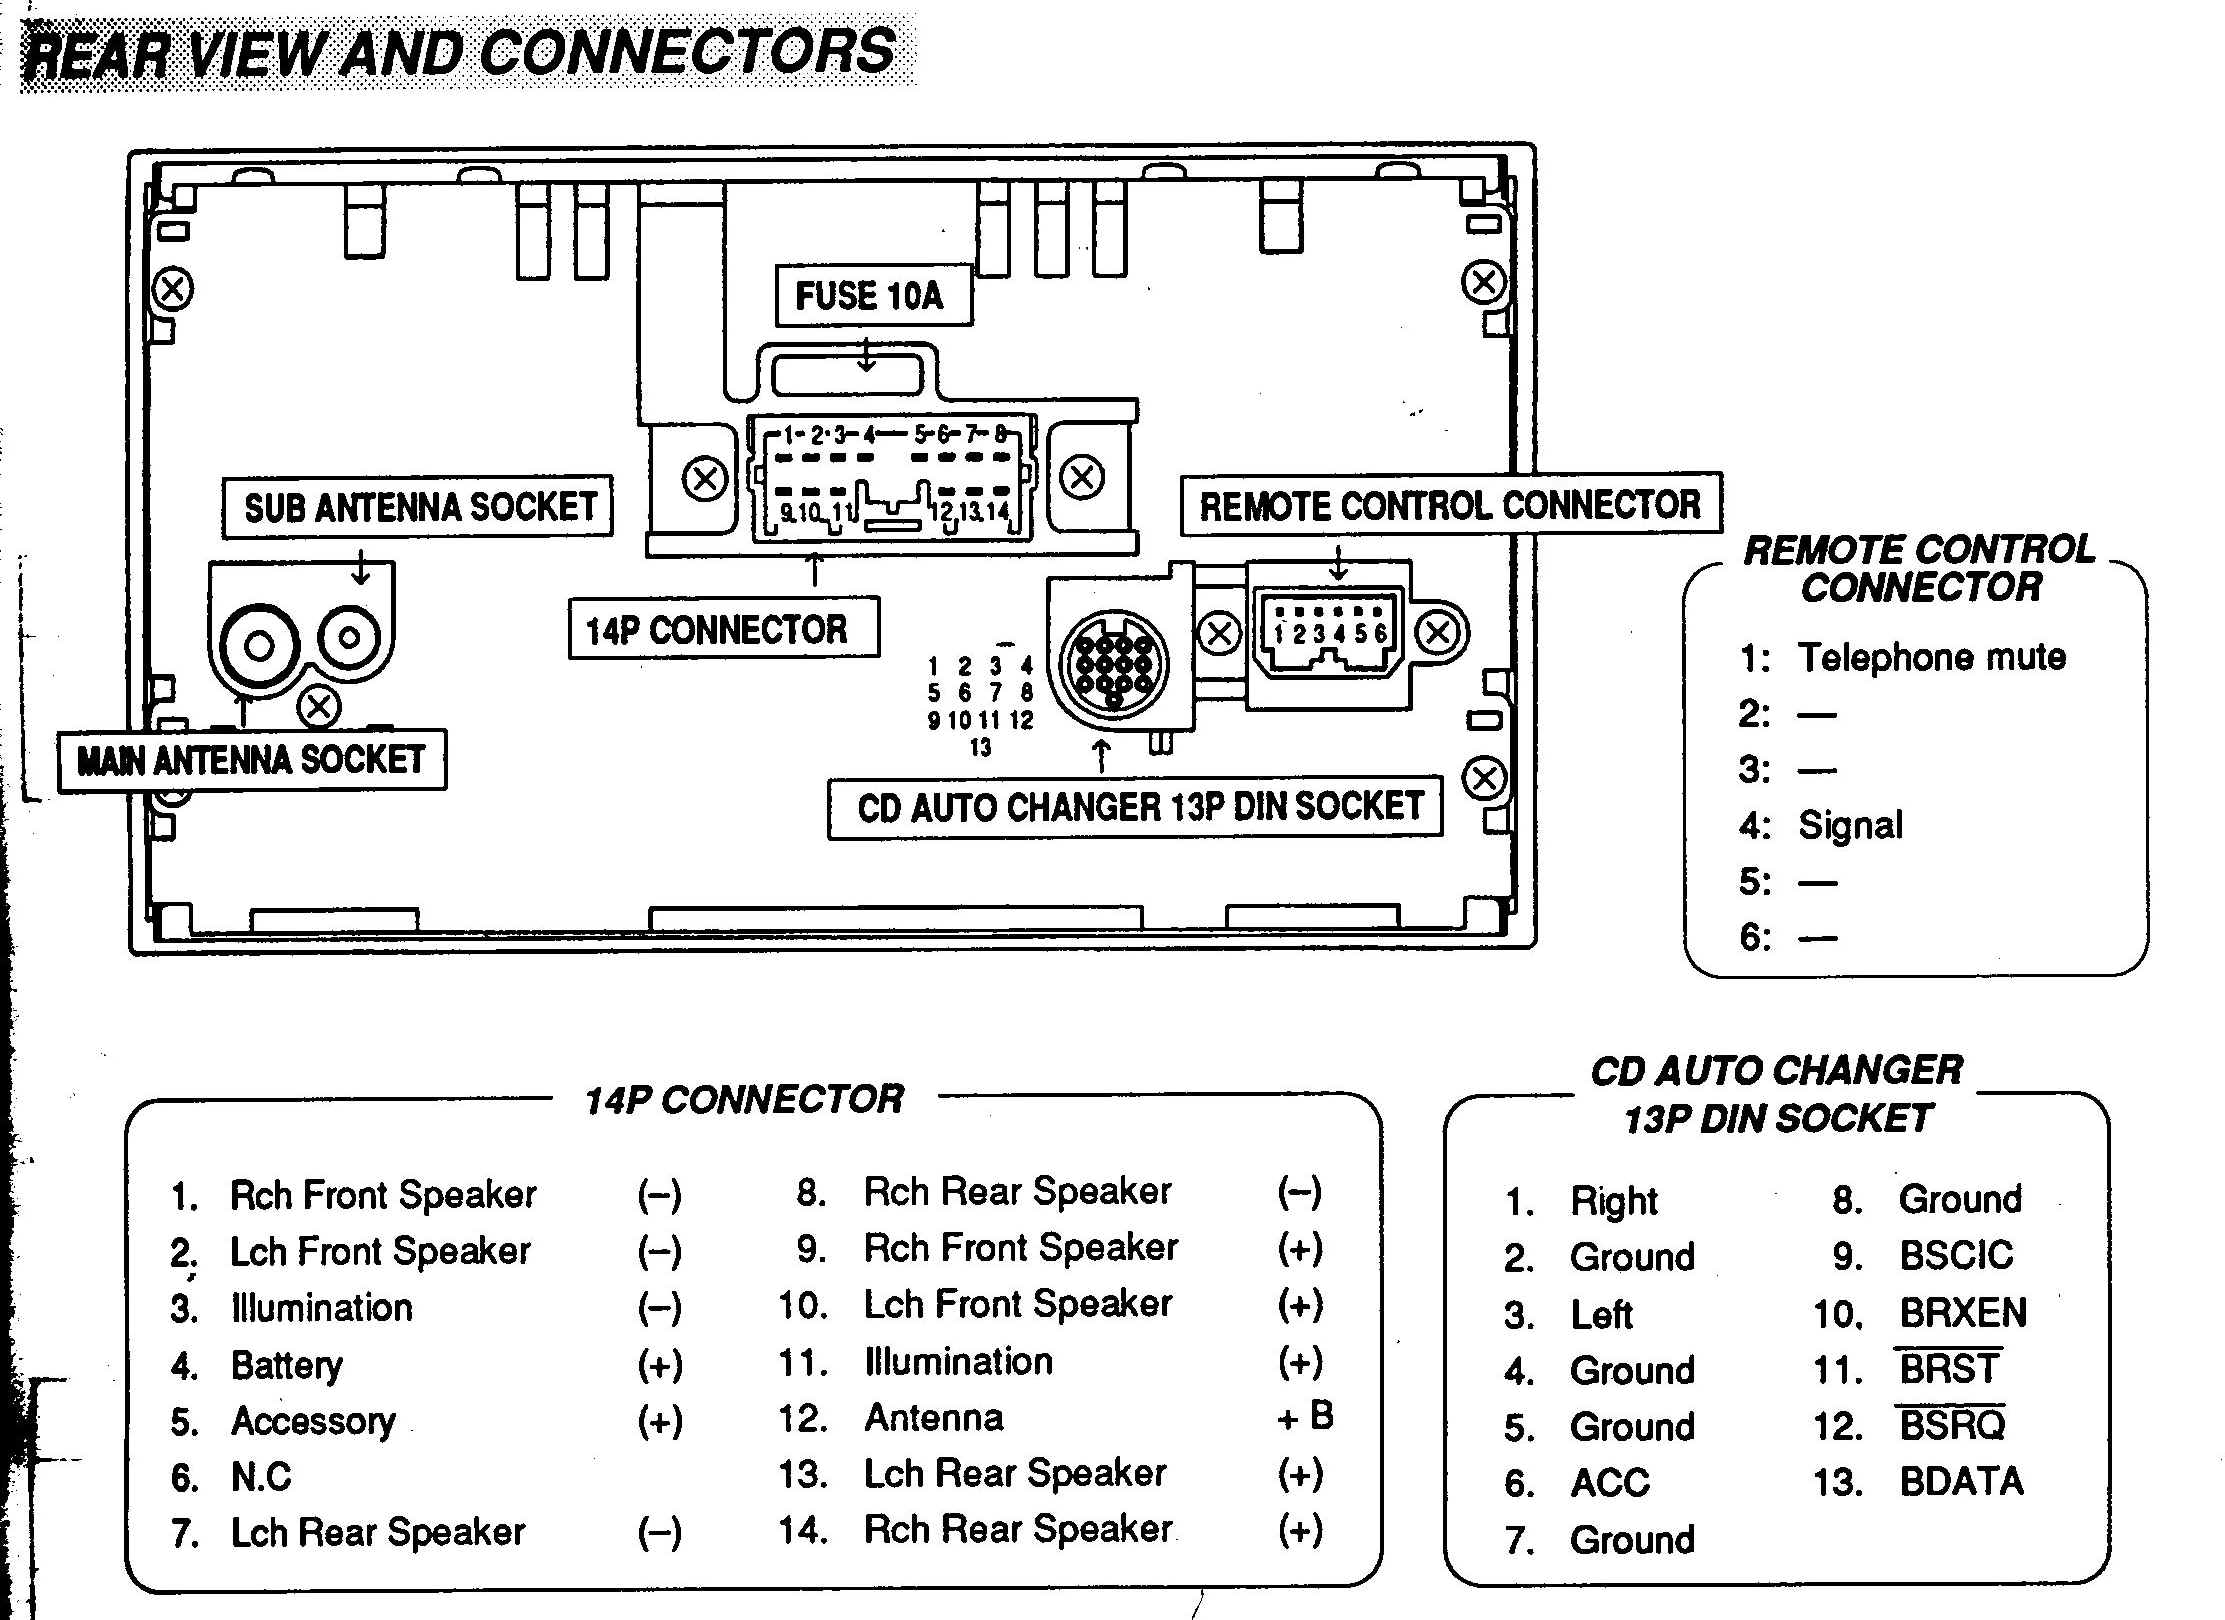 2008 Mitsubishi Endeavor Fuse Diagram Opinions About Wiring Box For Ford Fusion Lancer 2004 Detailed Schematics Rh Keyplusrubber Com